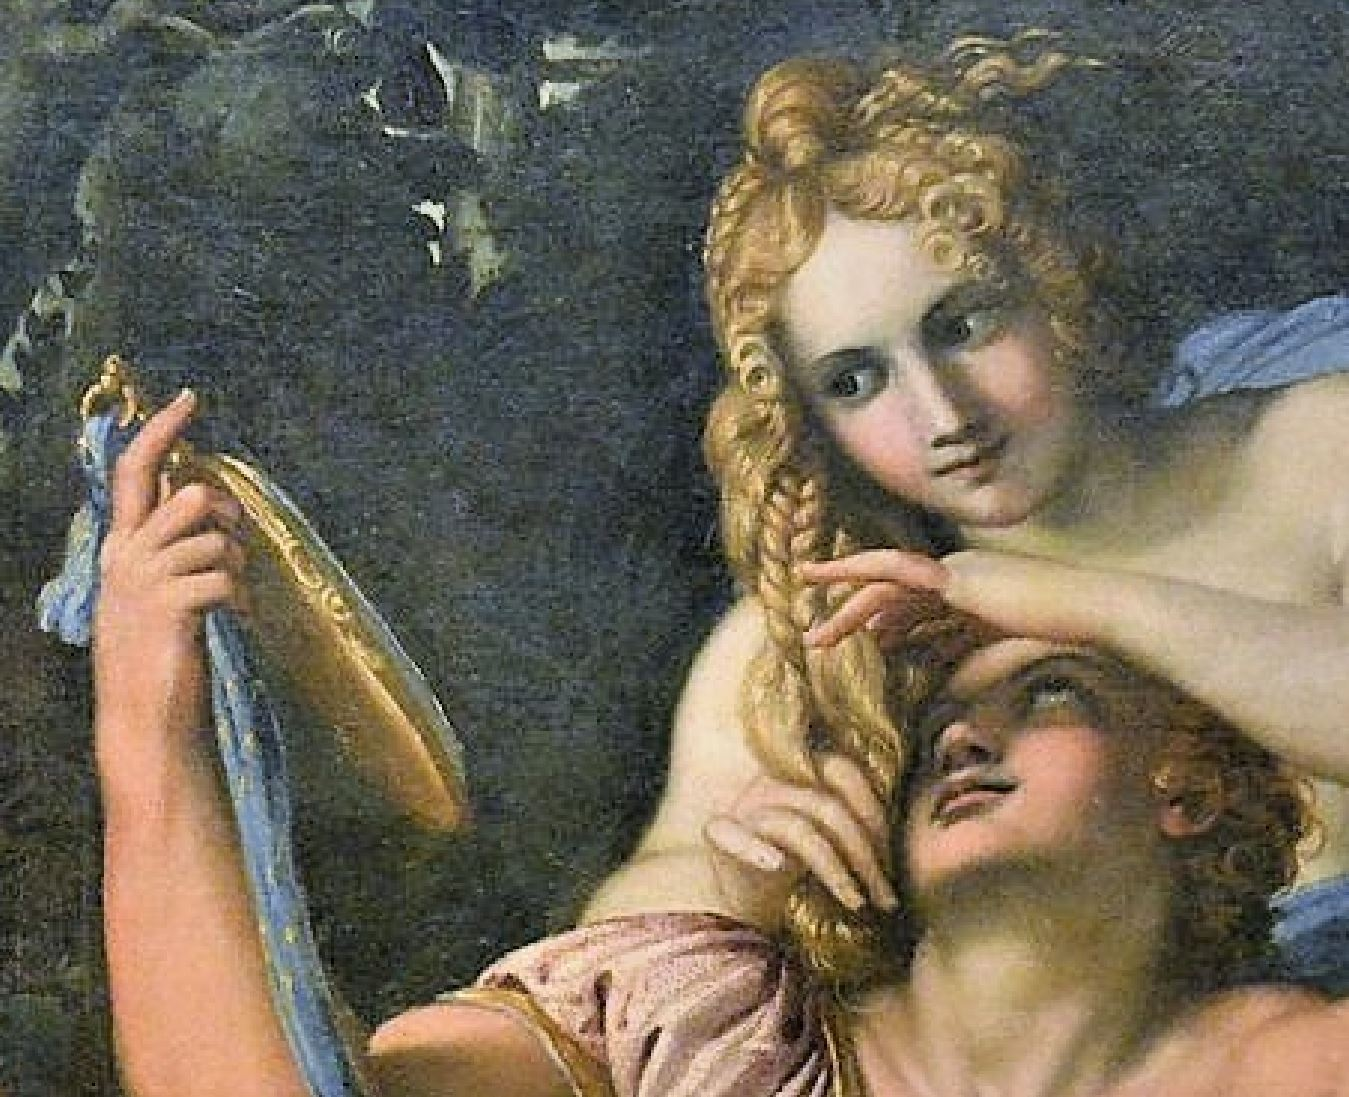 1601 ca rinaldo-armida Carrache Musee de Capodimonte detail regards